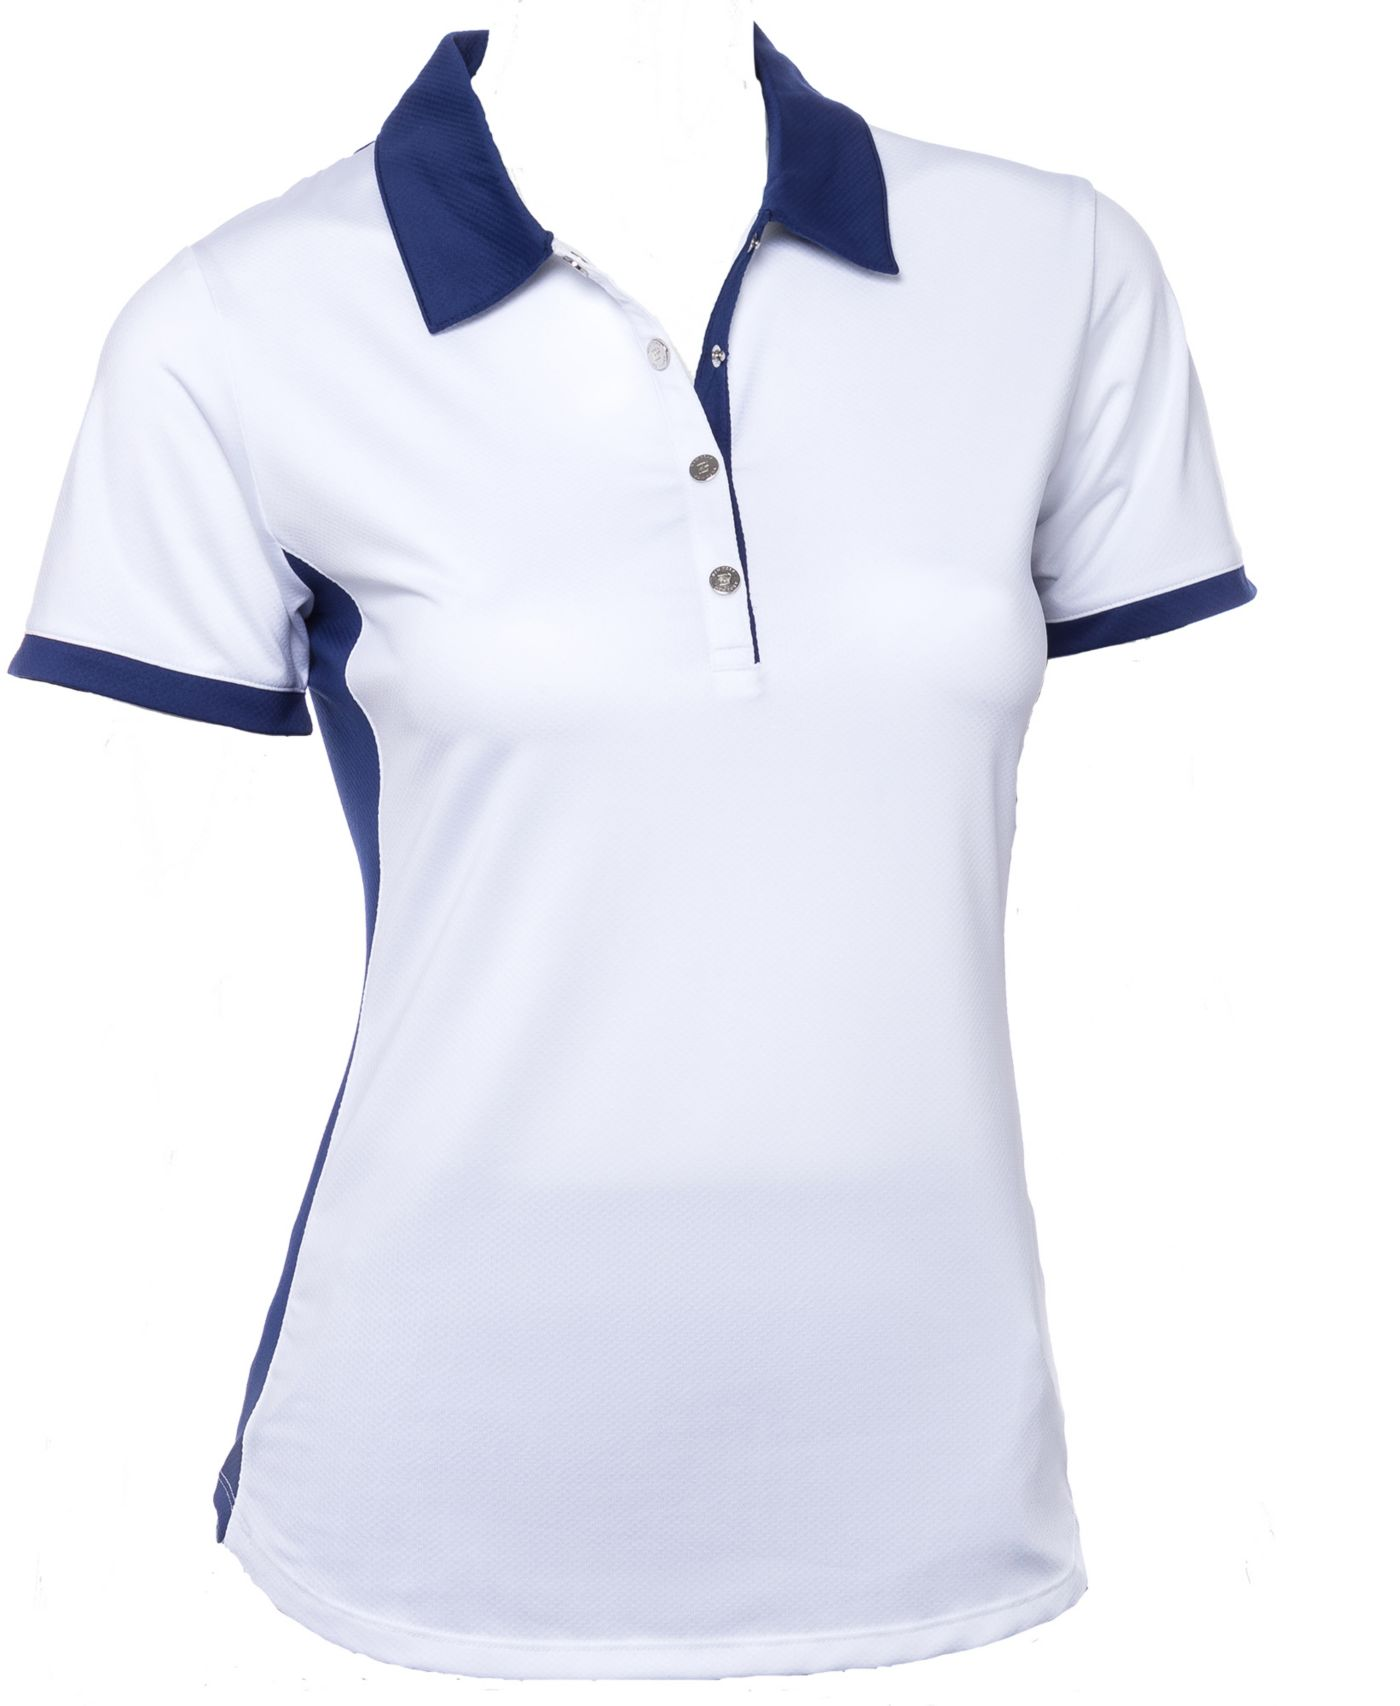 EP Pro Women's Short Sleeve Contrast Blocking Golf Polo